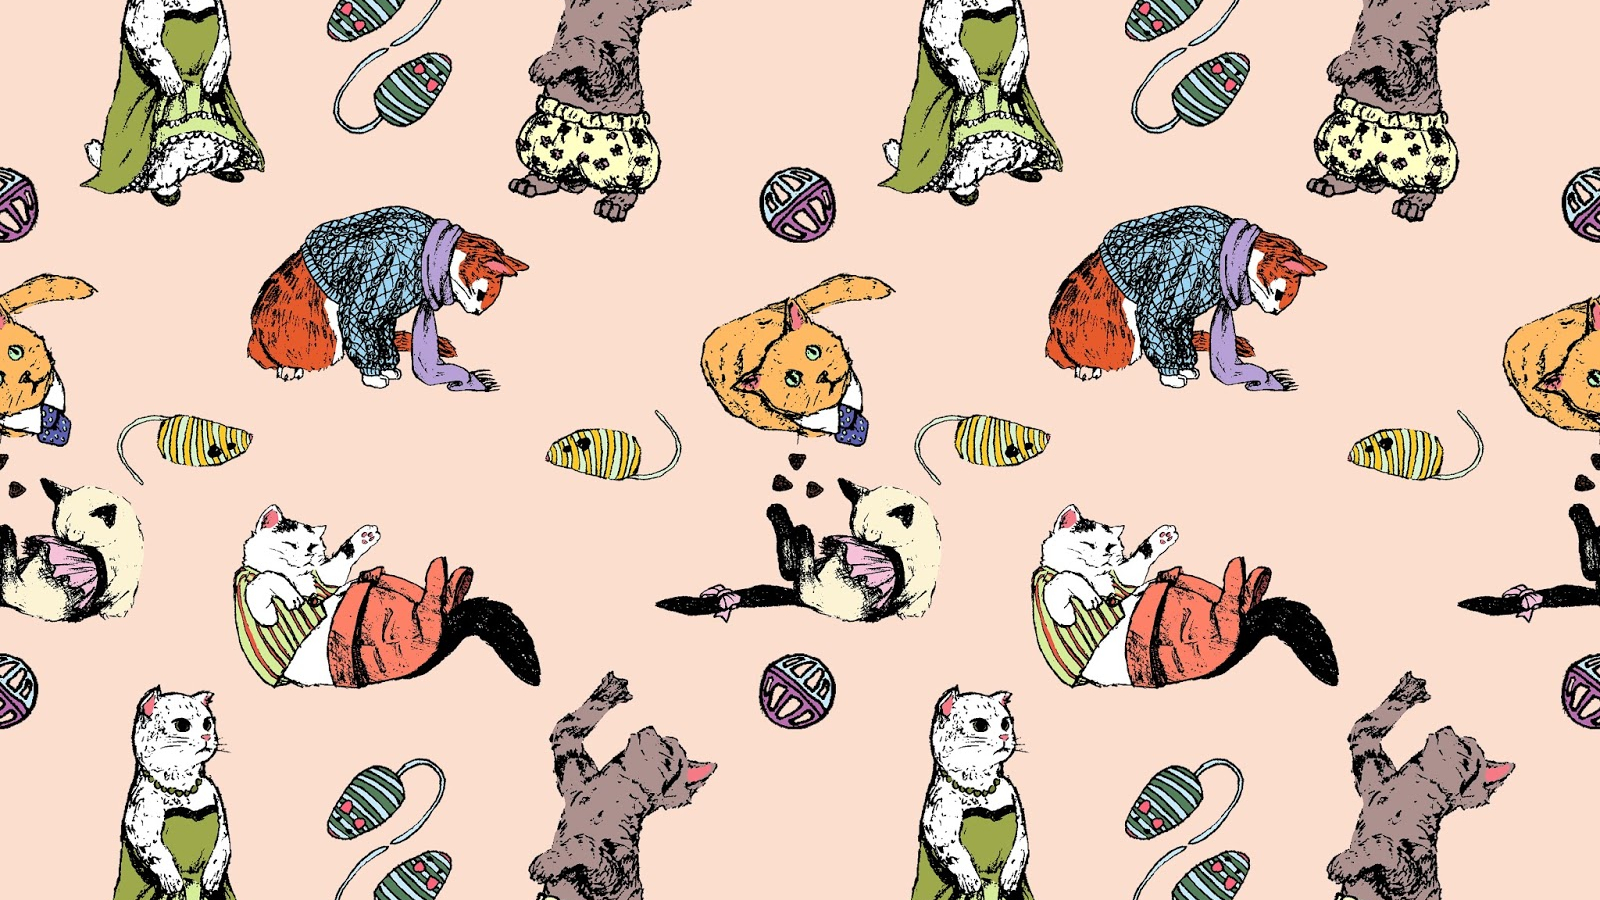 Free Download Cat Wallpapertiled Pattern 1600x1600 For Your Desktop Mobile Tablet Explore 48 Cat Drawings Wallpaper Cats Wallpaper Cat Wallpaper 1920x1080 Screensavers And Wallpaper Cats